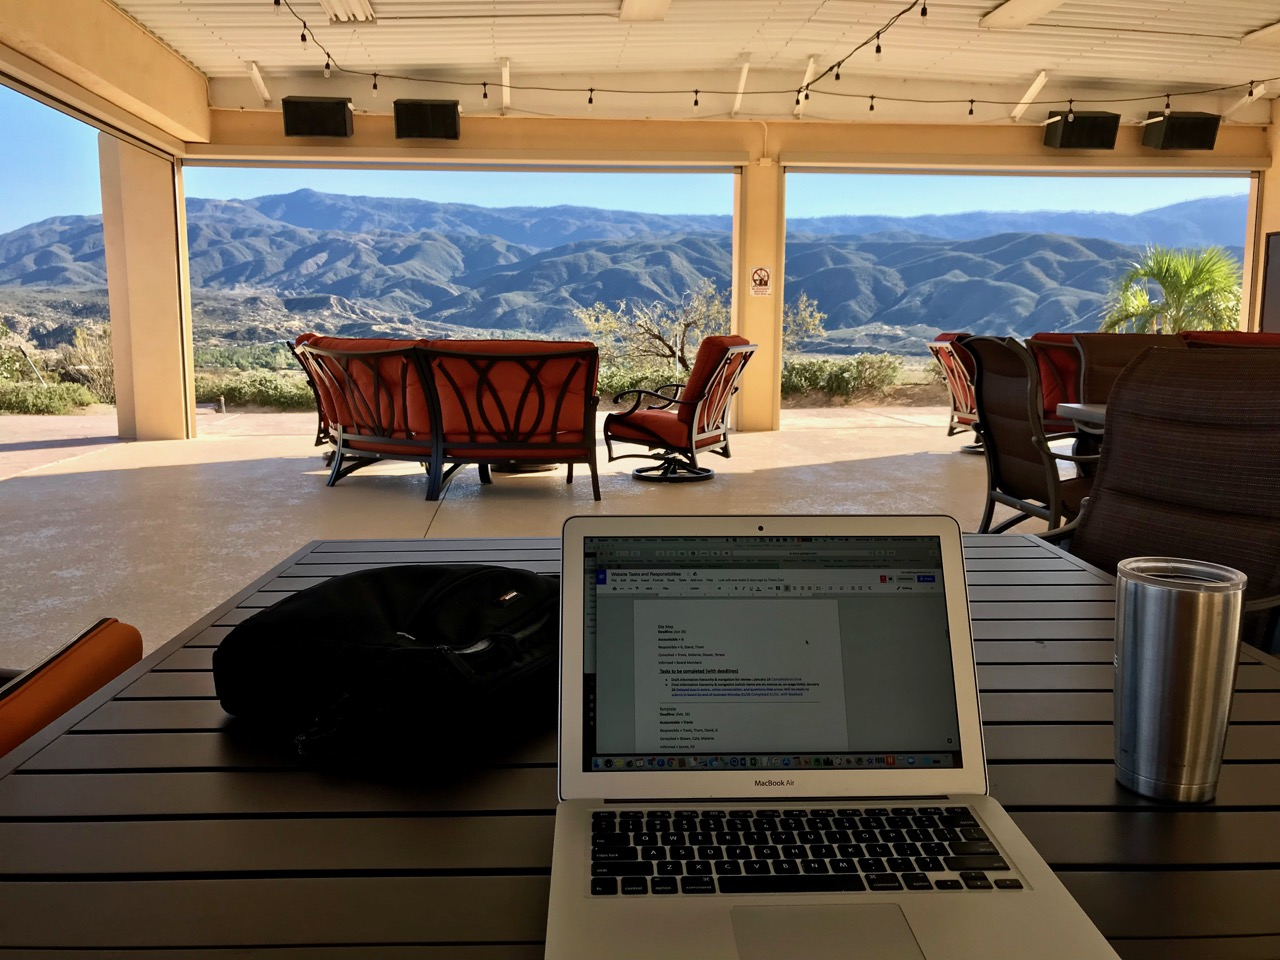 Working on the deck overlooking the mountains at Jojoba Hills SKP Co-Op, Aguanga, CA (DG photo)